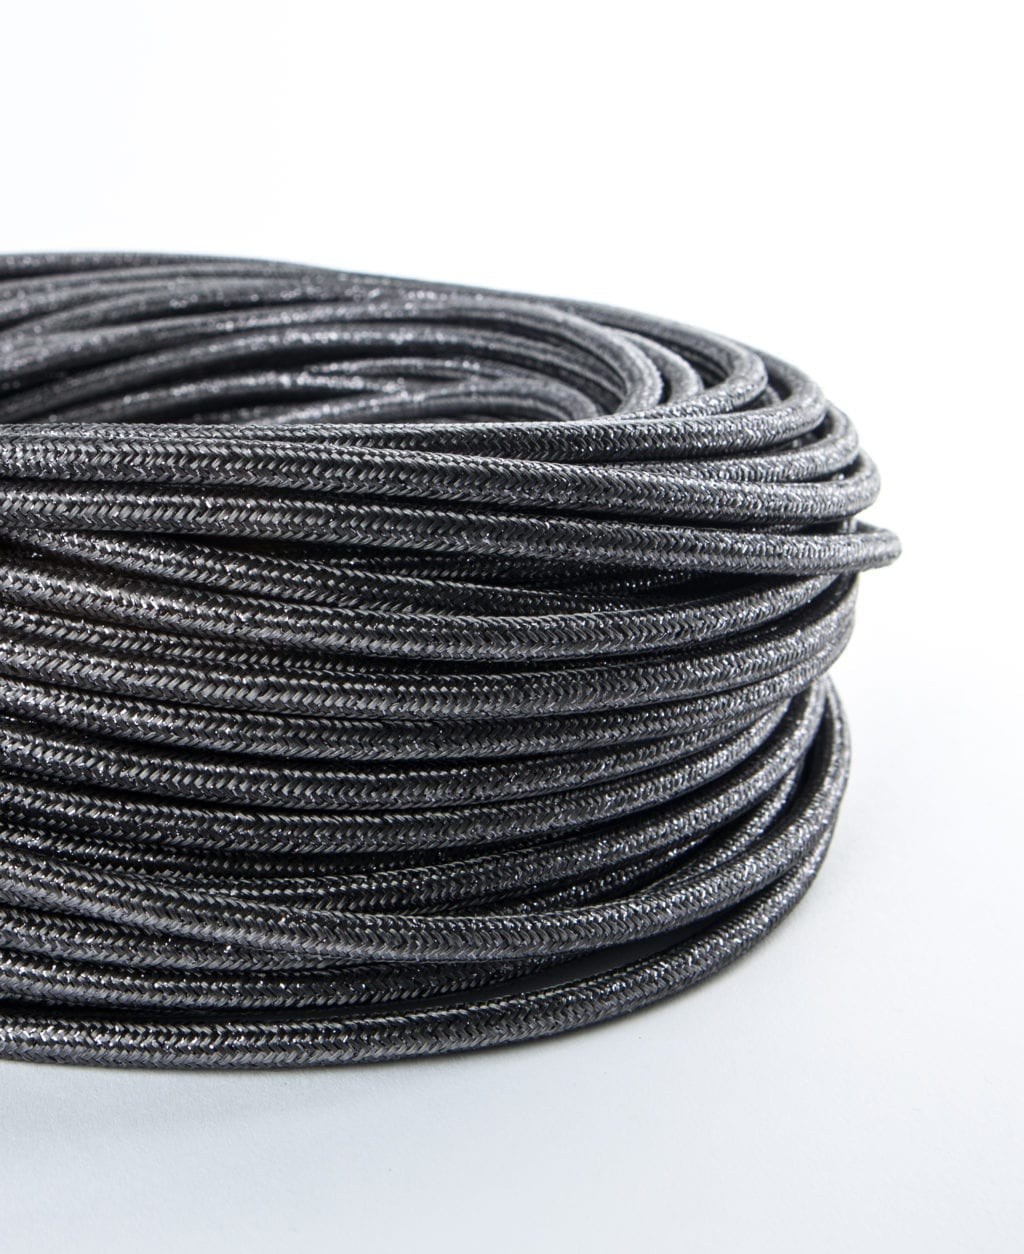 closeup of glamour grey fabric cable coil against white background